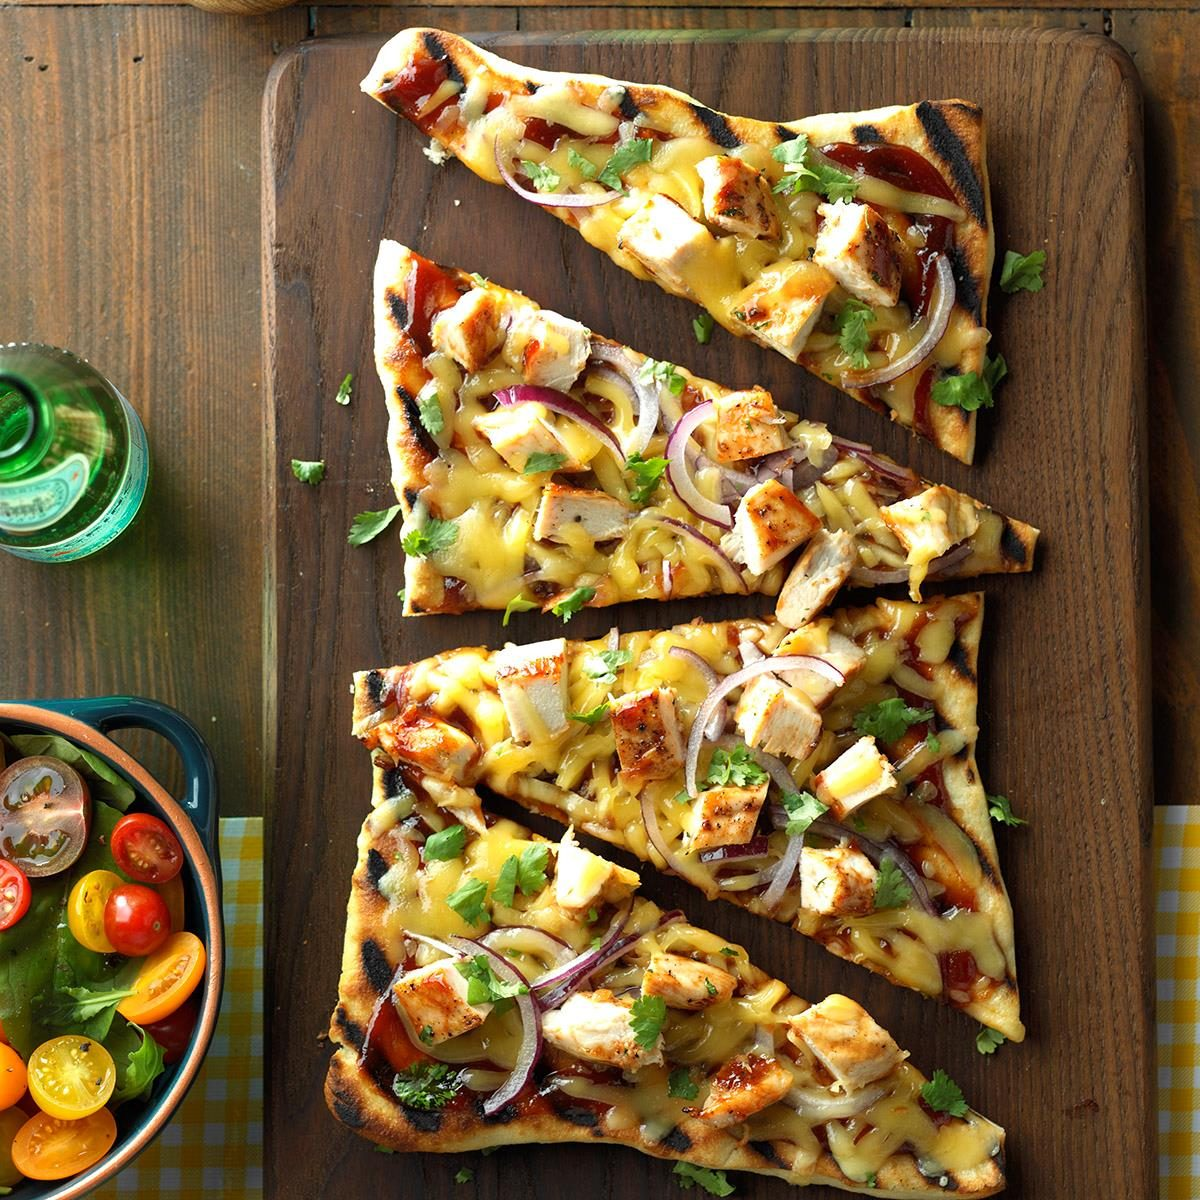 Friday: Barbecued Chicken Pizzas